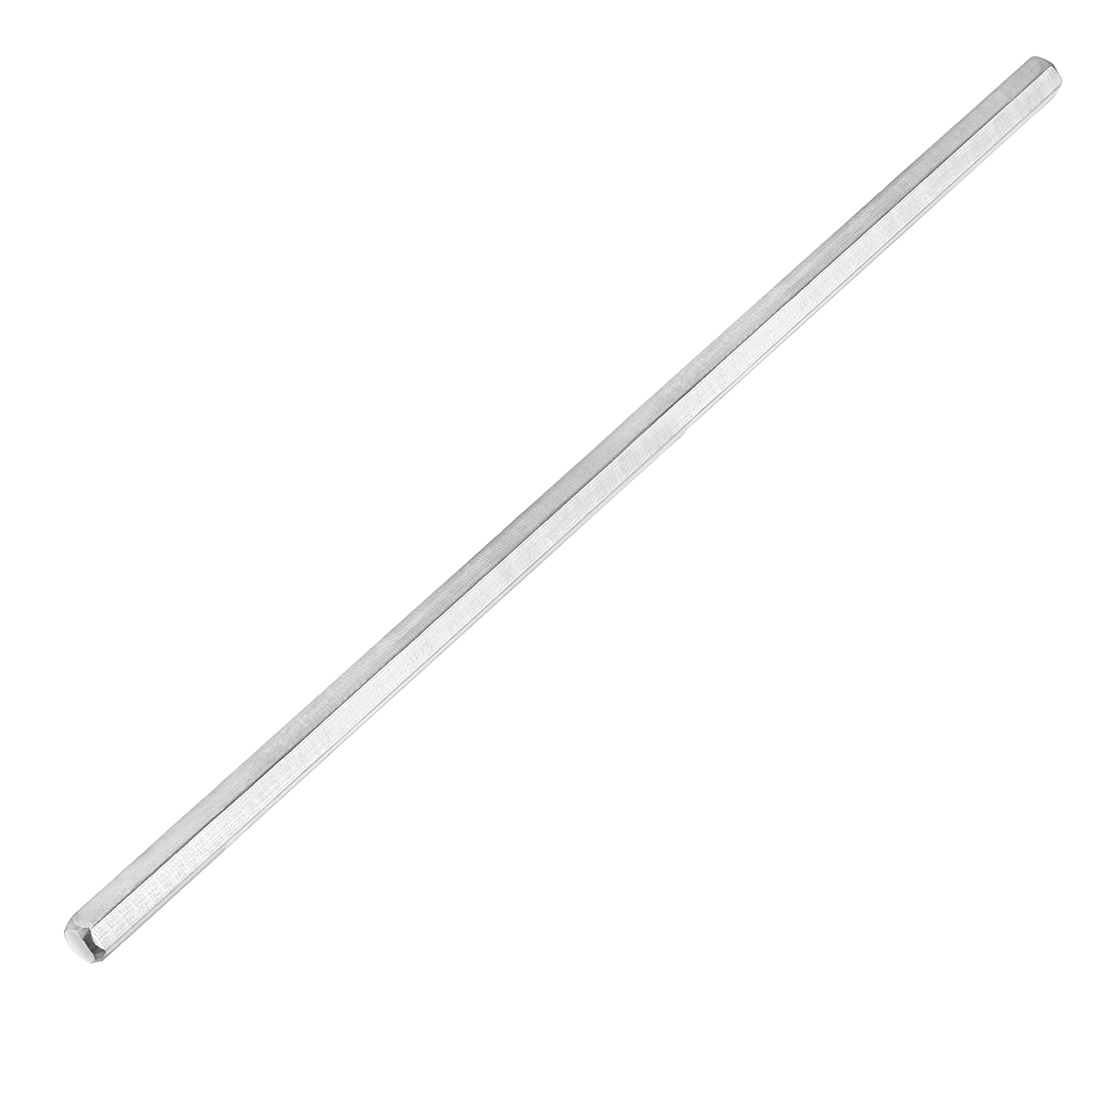 2.7mm Dia 100mm Length 303 Stainless Steel Solid Hex Rod Axle for DIY Toy Car